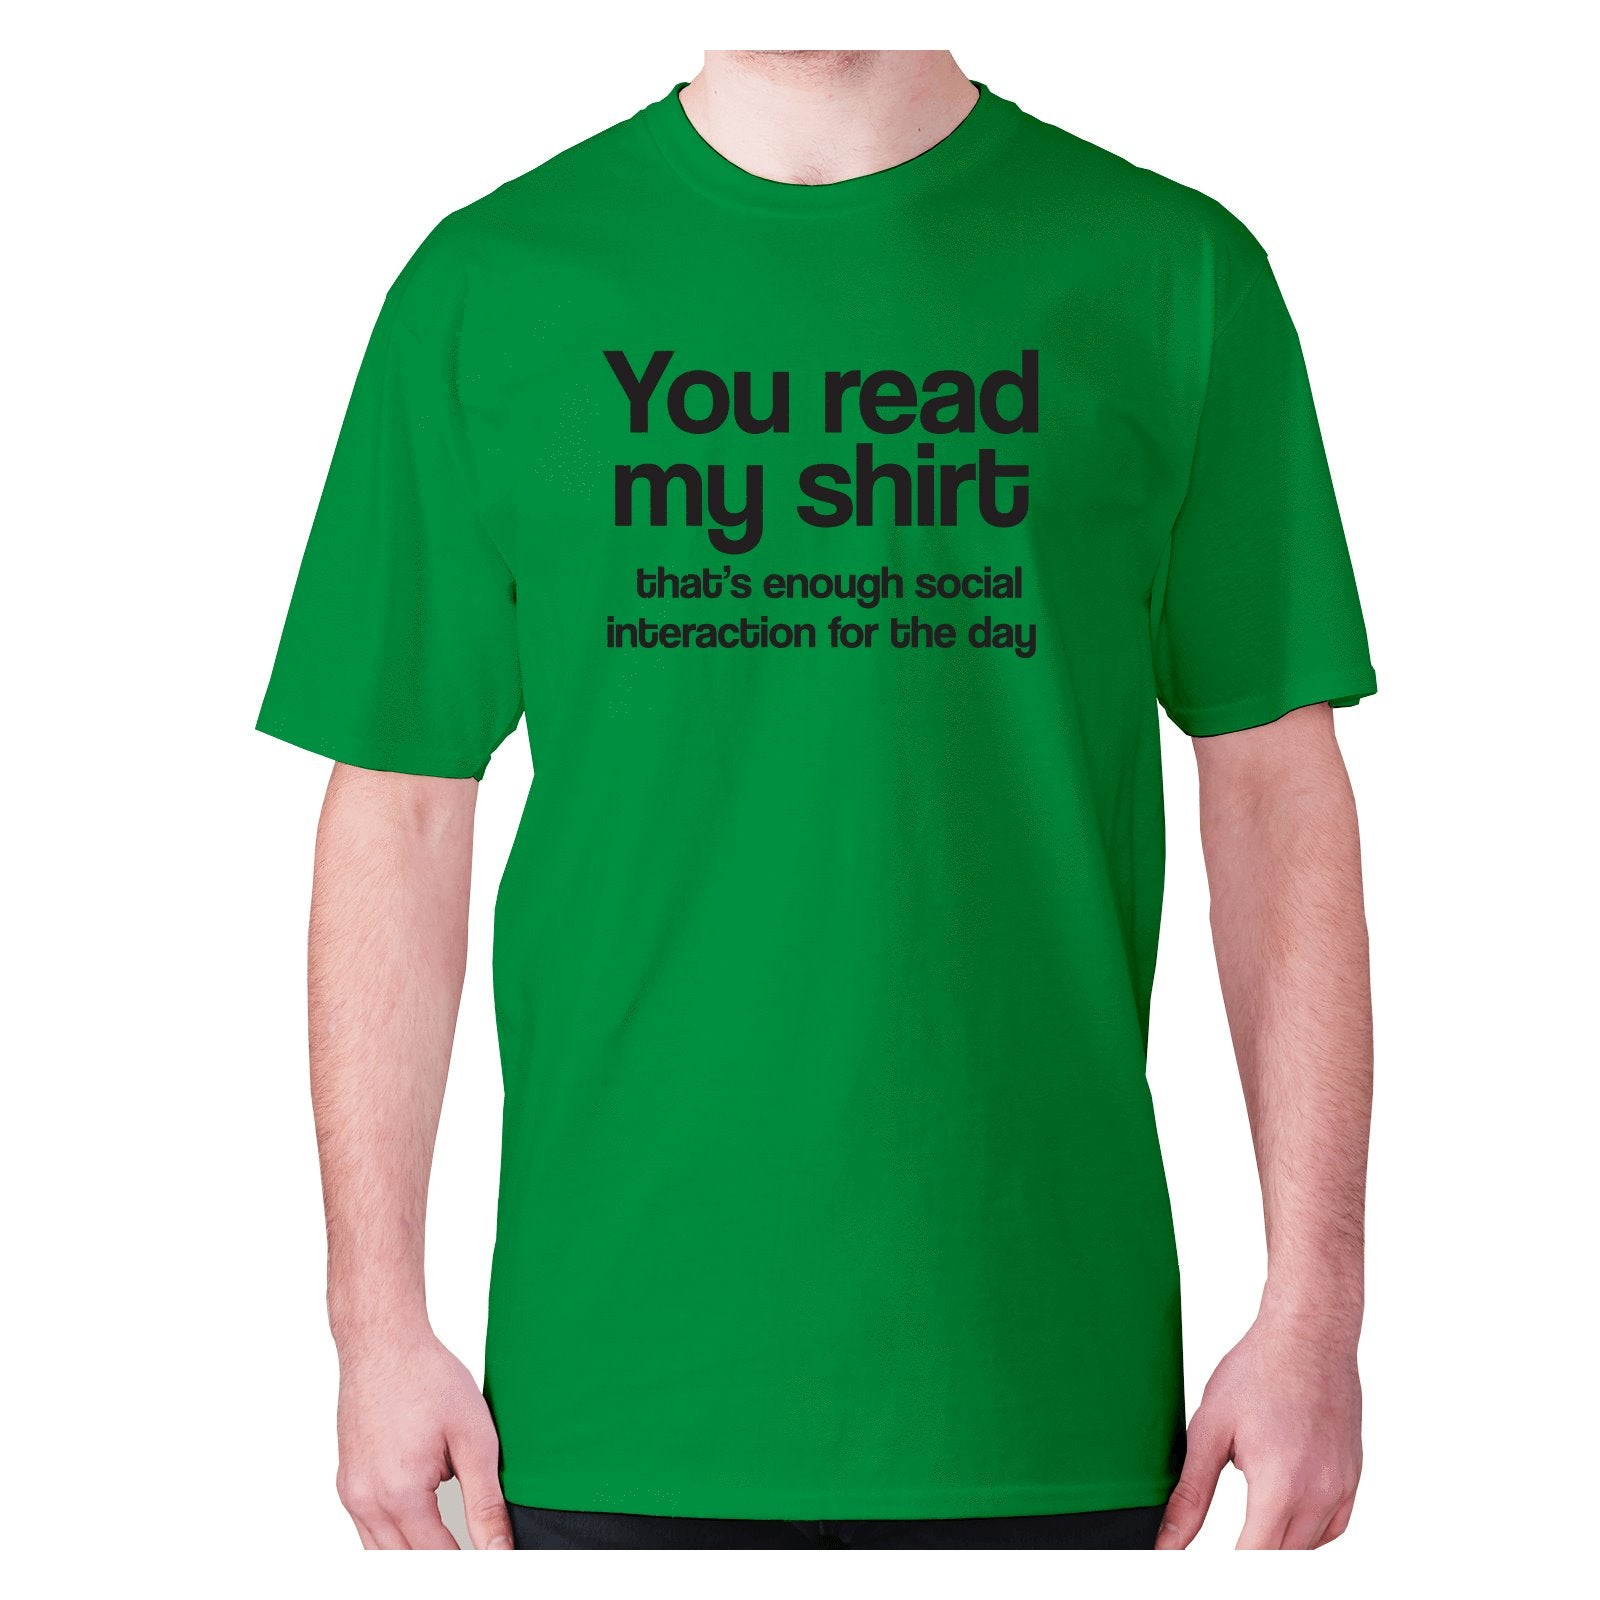 db1c8516cfbe1 You read my shirt that's enough social interaction for the day - men's  premium t-shirt